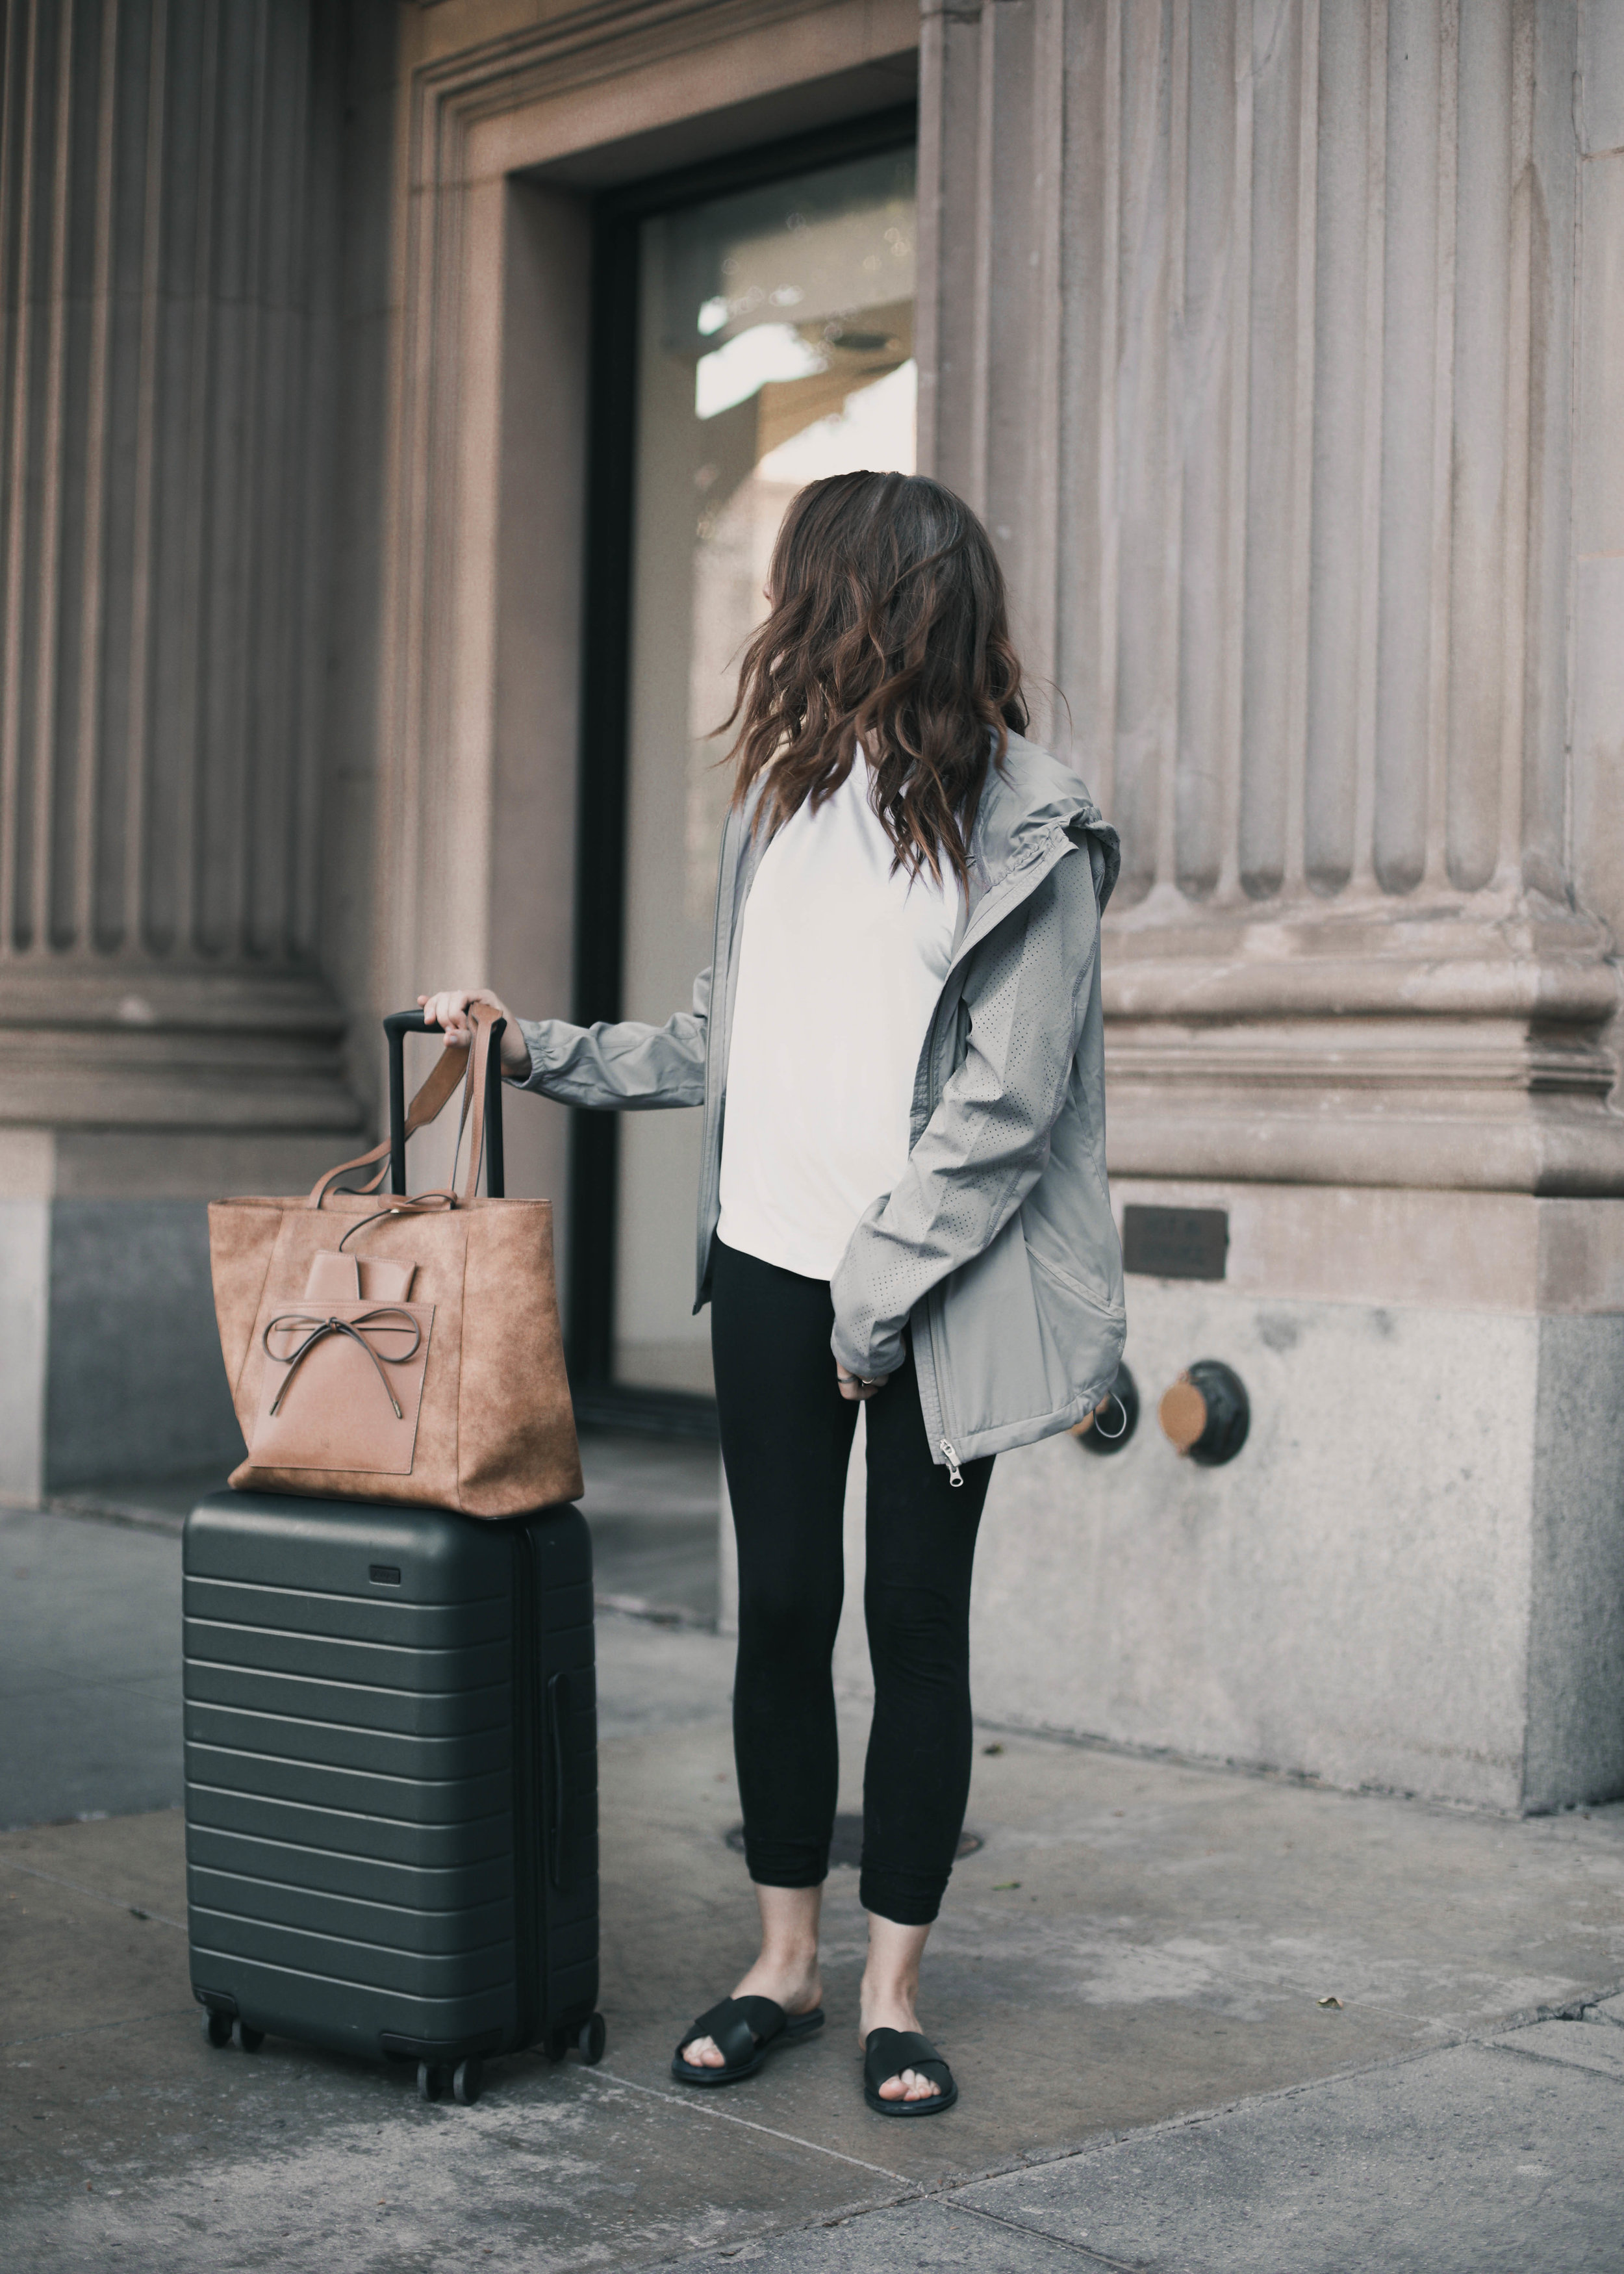 a great carry on - I've definitely found that the power in having a great carry on is beyond important! My requirements for a great carry on are that it can hold all my electronics and goodies I want for the plane and that it can be easily carried either by me or sitting on top of my suitcase. I'm obsessed with this one from Elle Jae Gypset. One of my favorite features is the envelope pocket in the front.It's great for keeping small things (ID, credit card, memory card) that you want to access quickly and keep safe! And bonus! It's made with all vegan leather! Yay!Get your Elle Jae Gypset bag here!